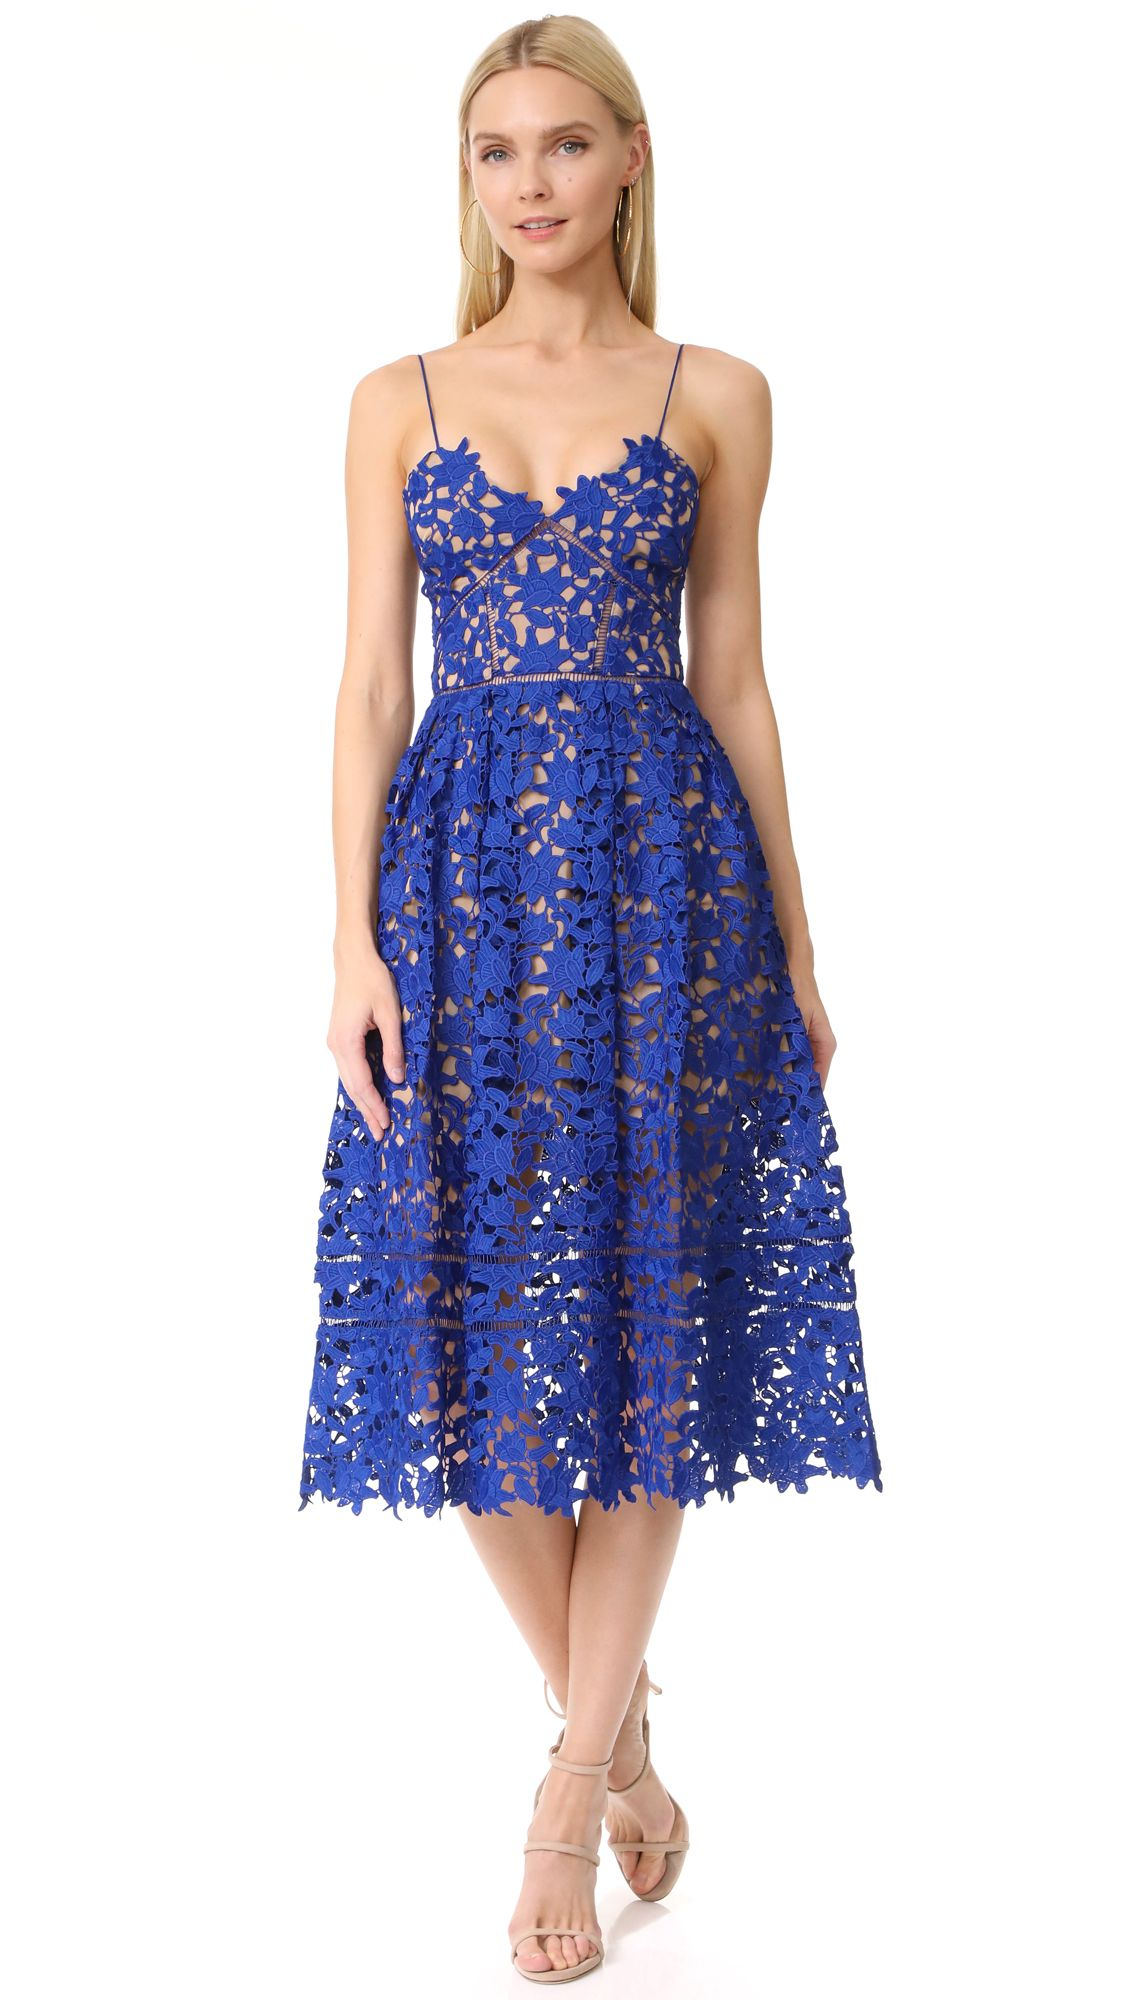 Lace Midi Dresses   Blue Dresses   Dresses, Self portrait dress ... 2fbdc7cd4d